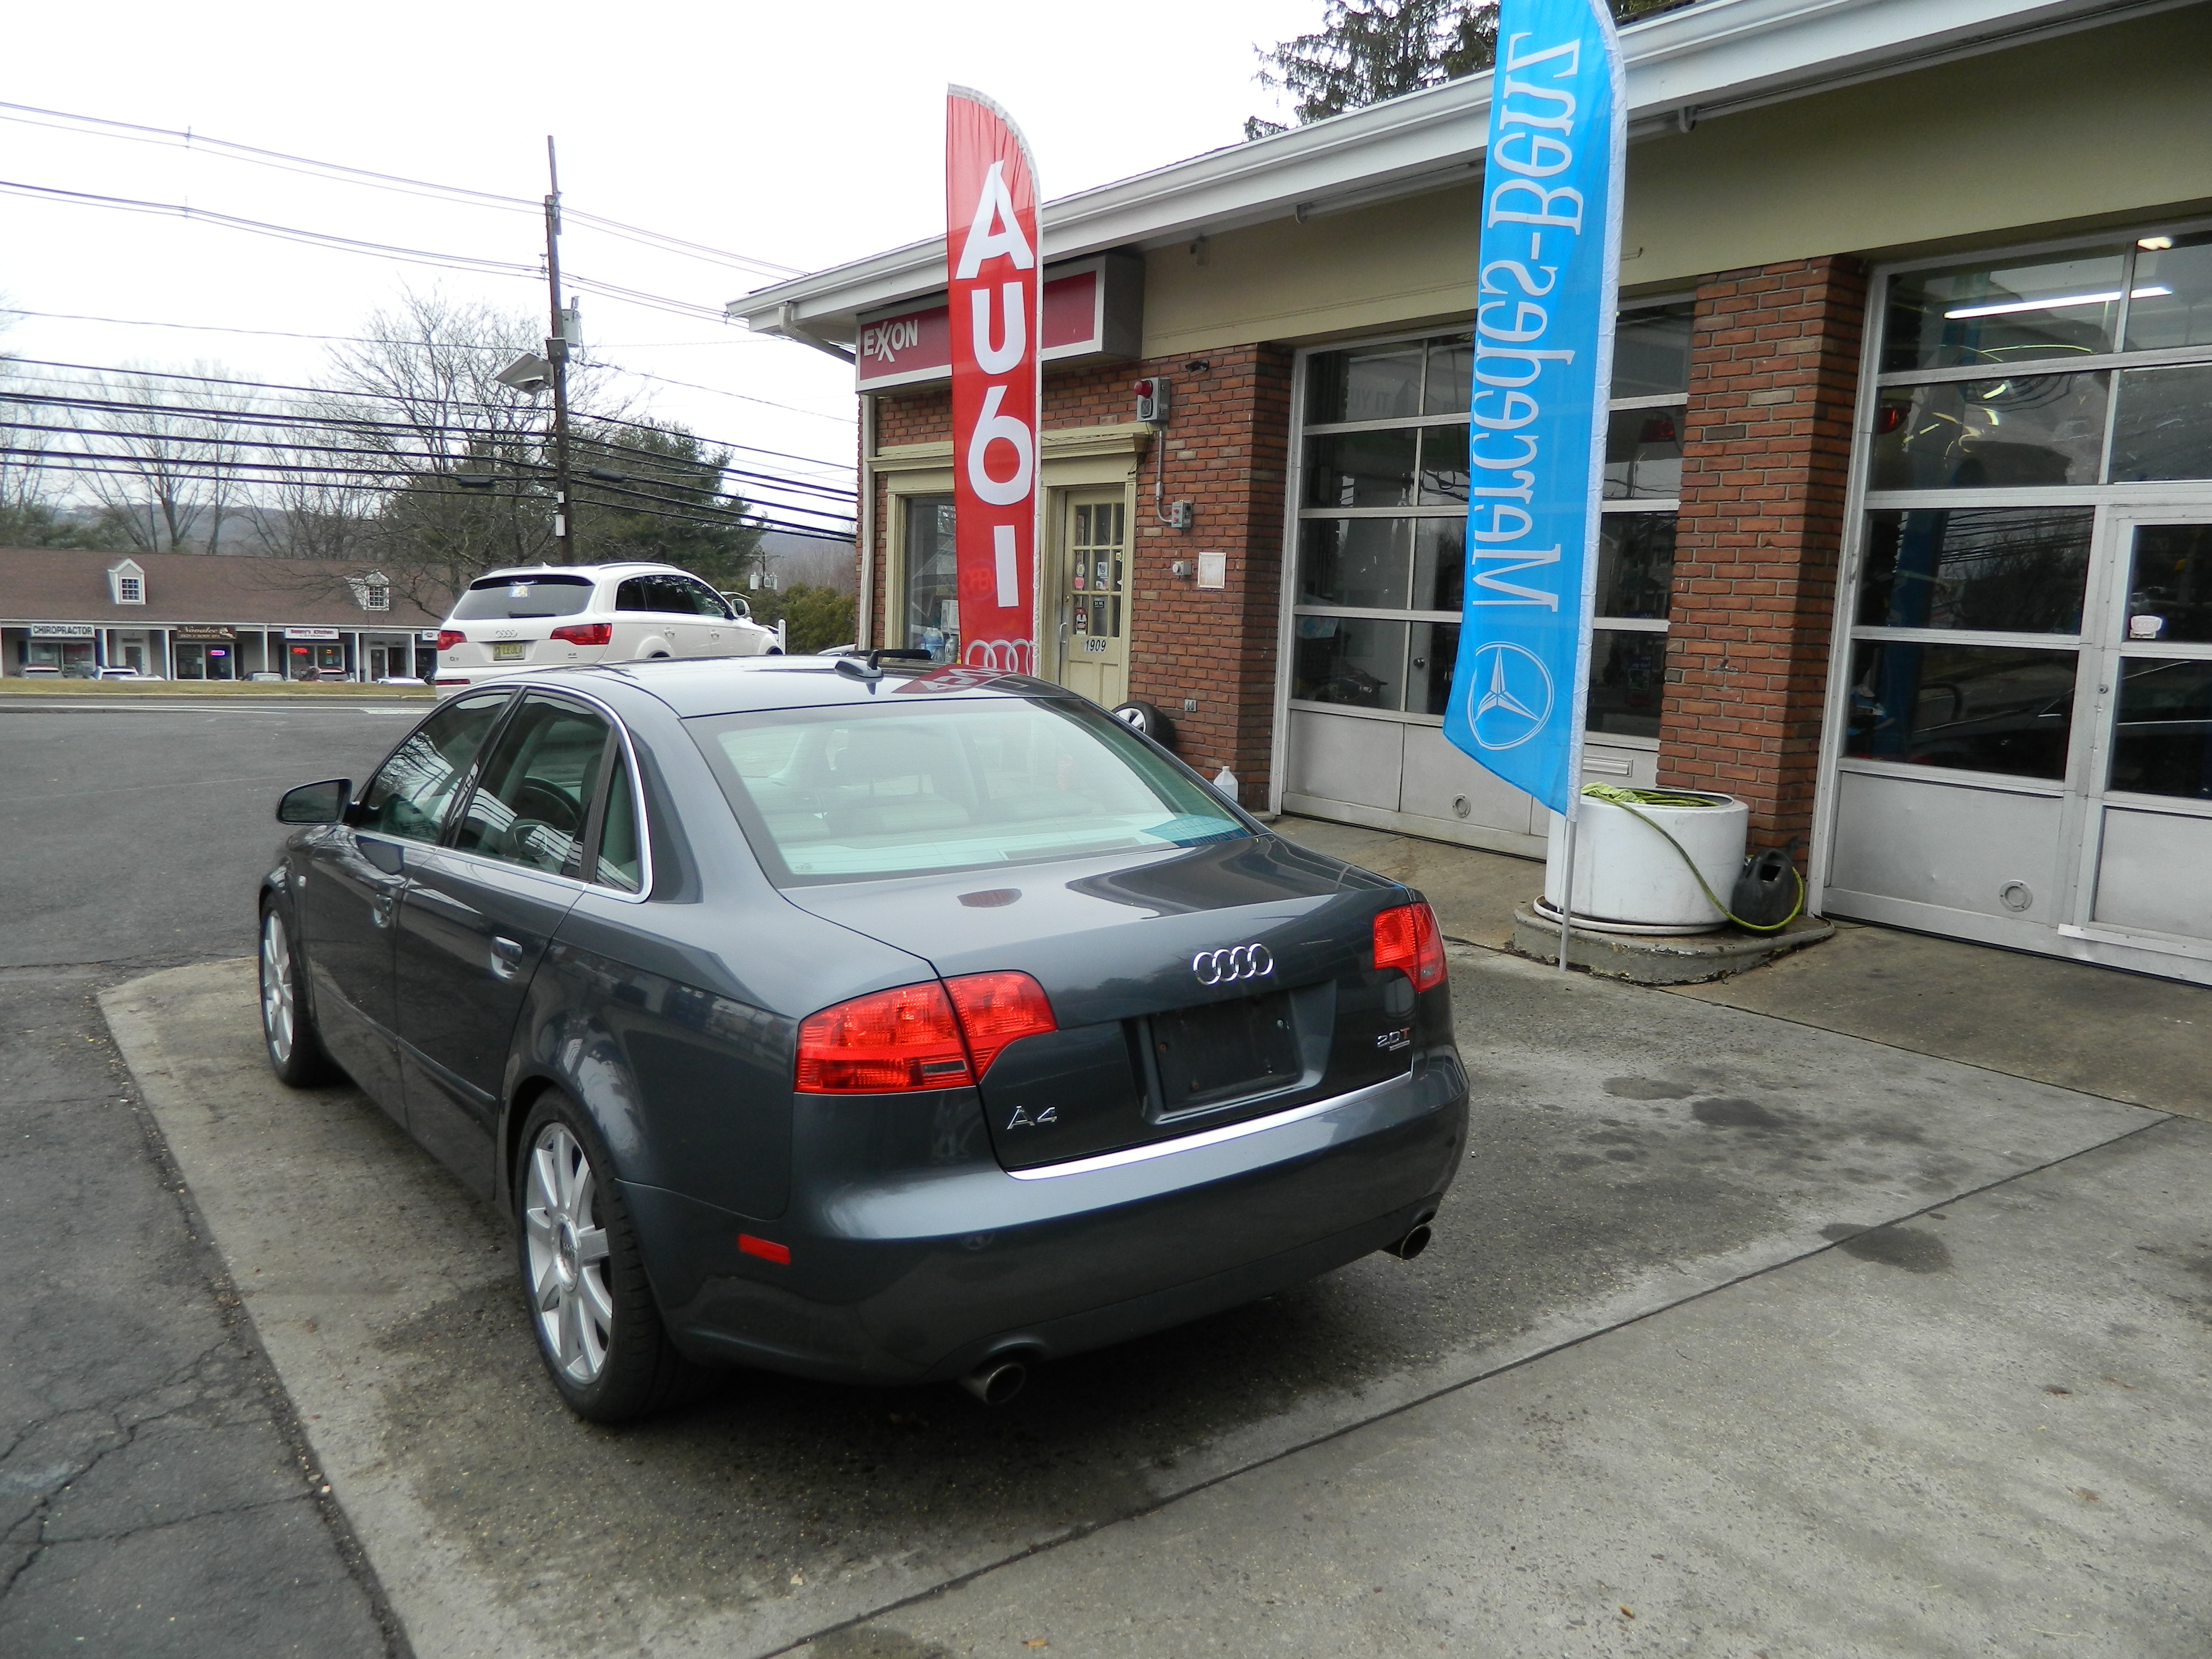 2006 audi a4 2 0t for sale in new jersey europerformance llc audi repair shop martinsville. Black Bedroom Furniture Sets. Home Design Ideas